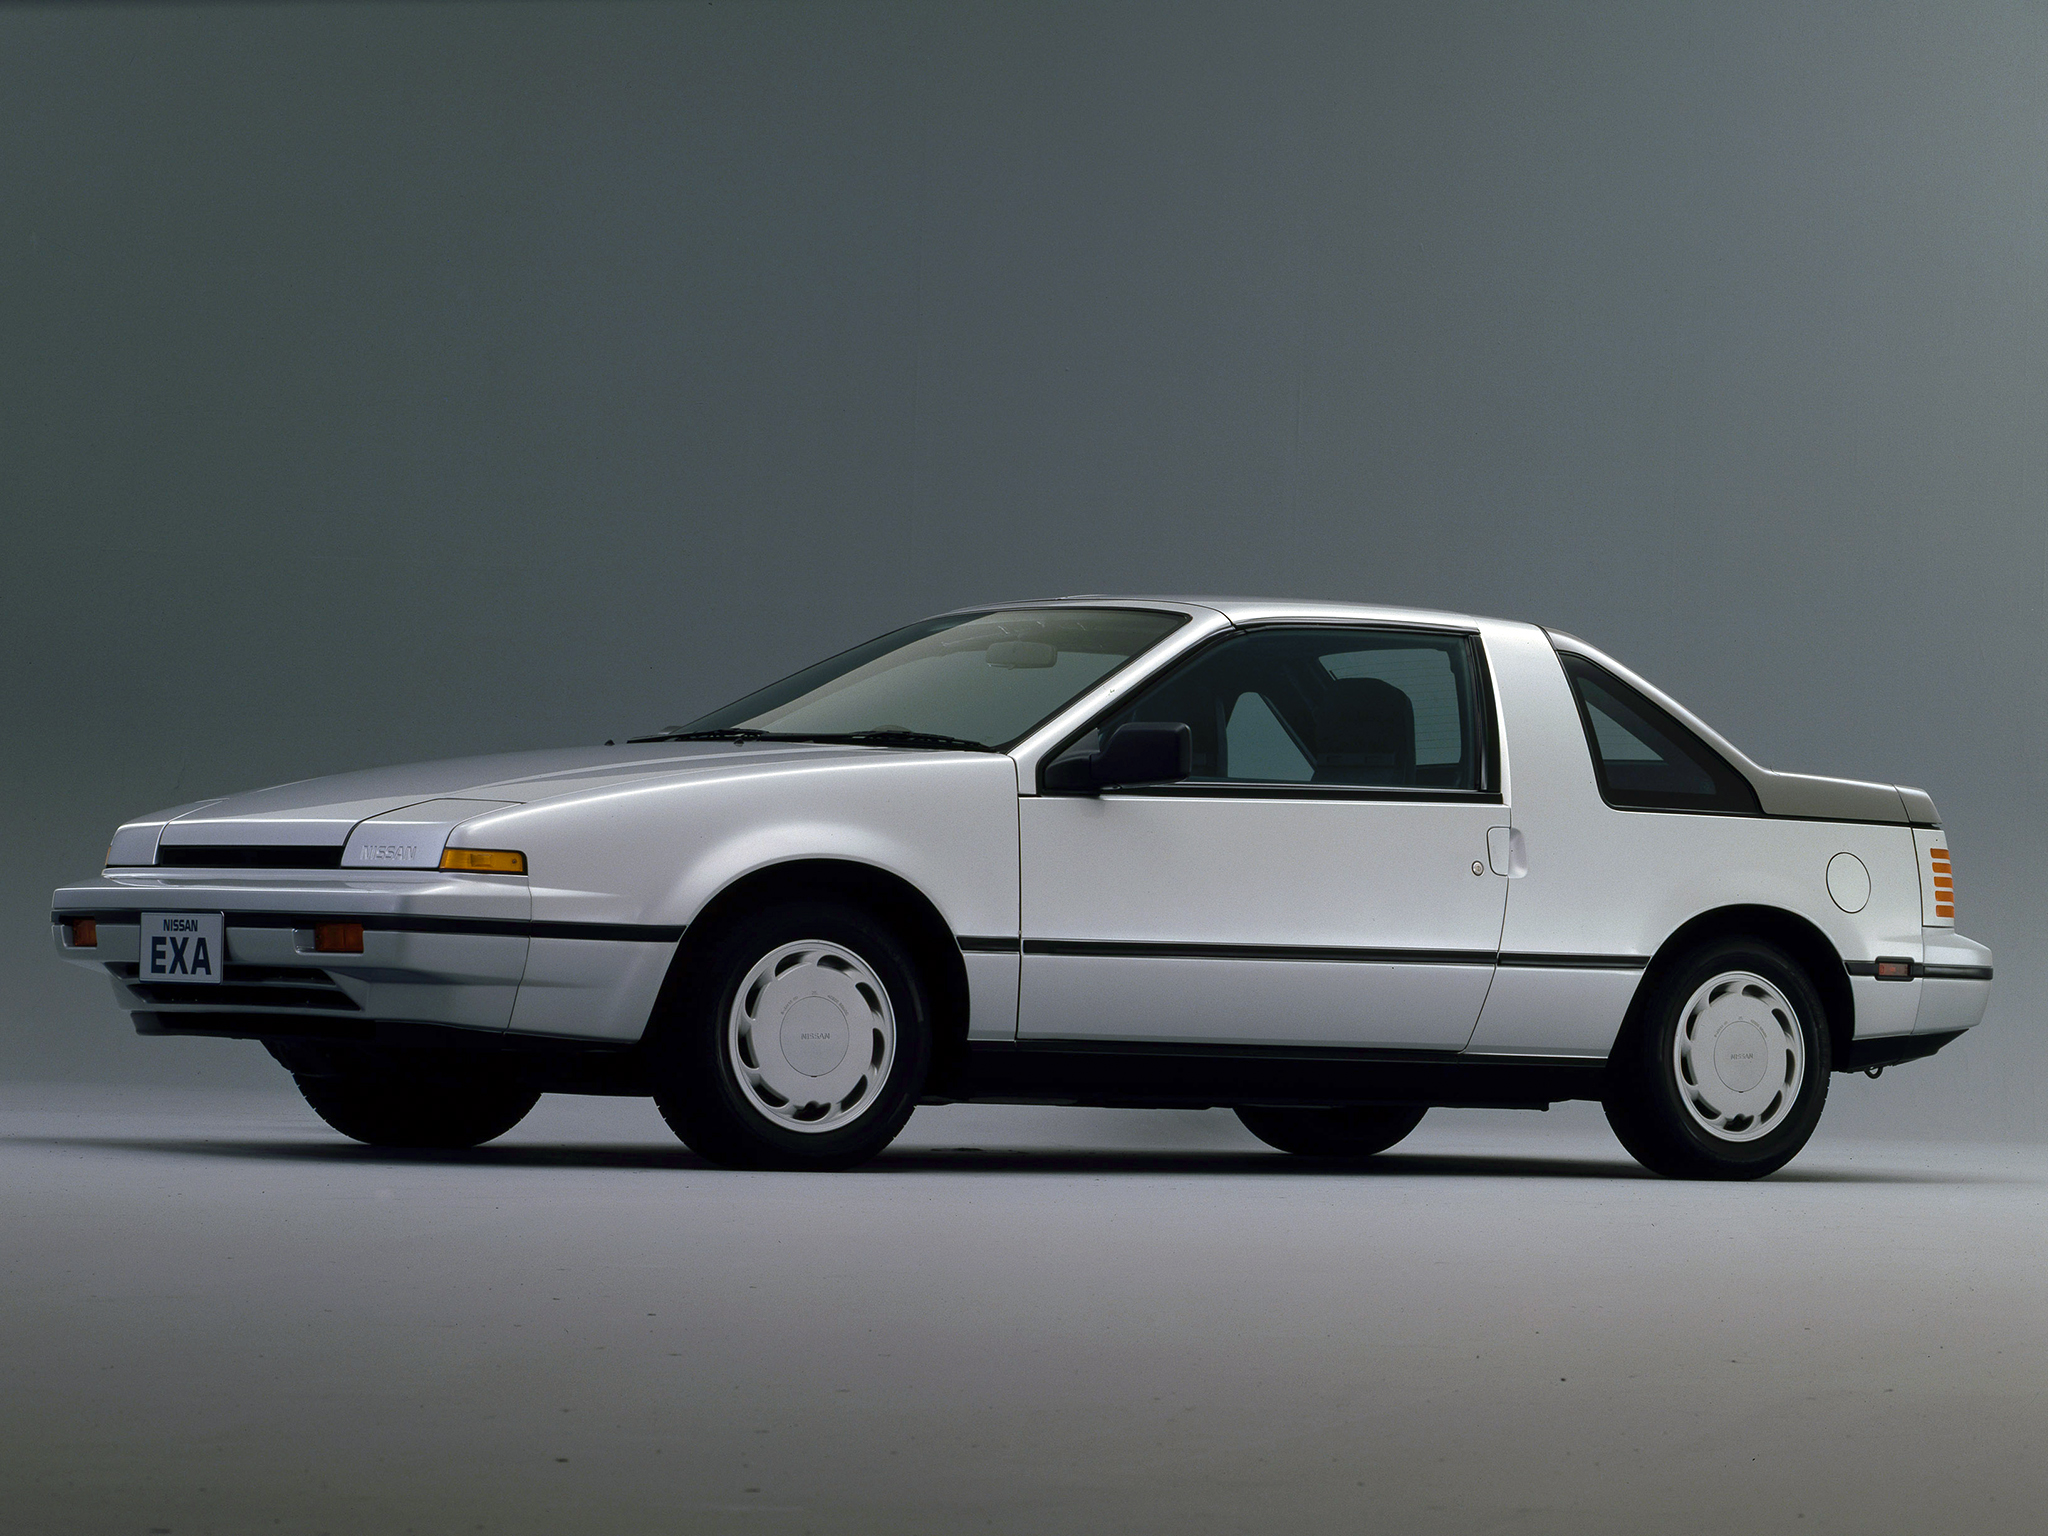 Nissan exa photo - 7